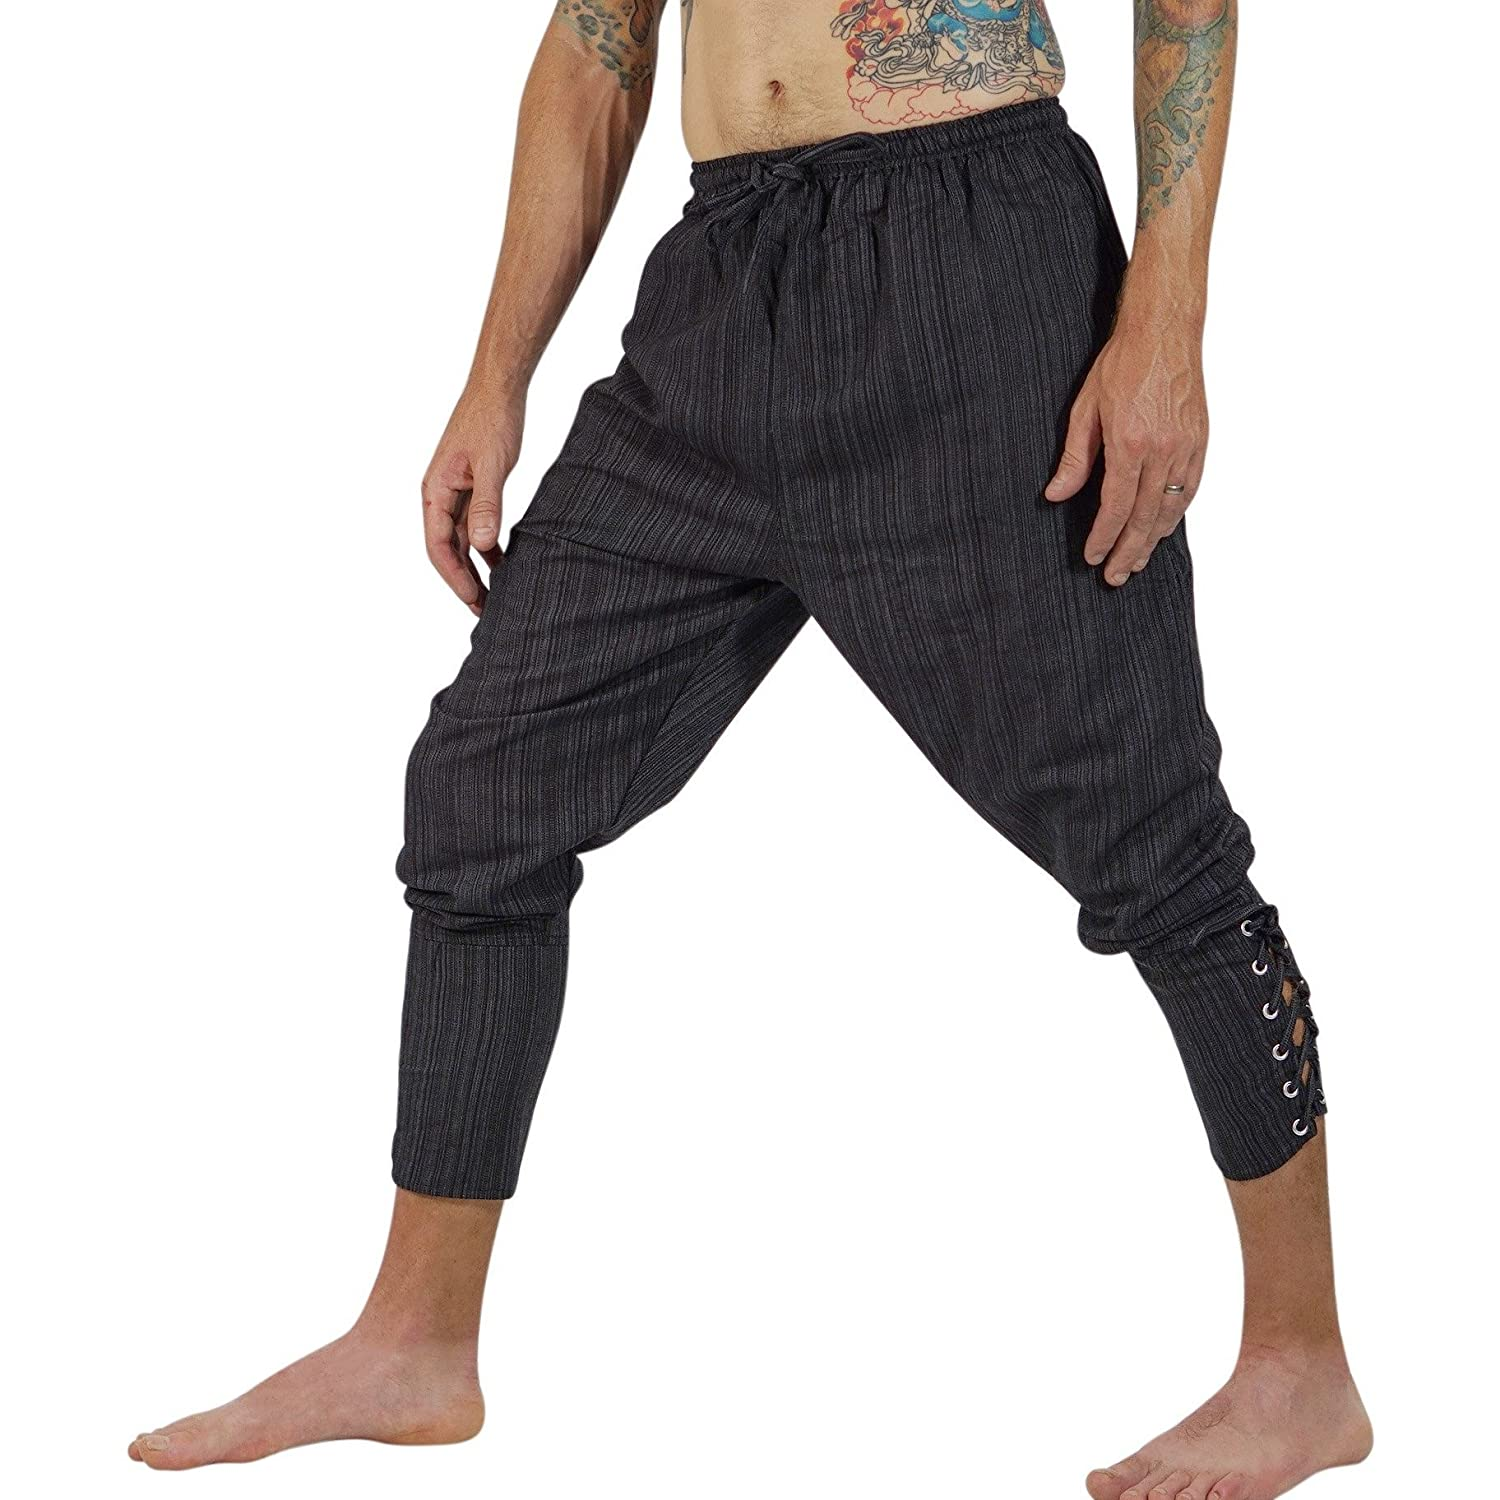 zootzu Ankle Cuff Medieval Pants - Striped Black